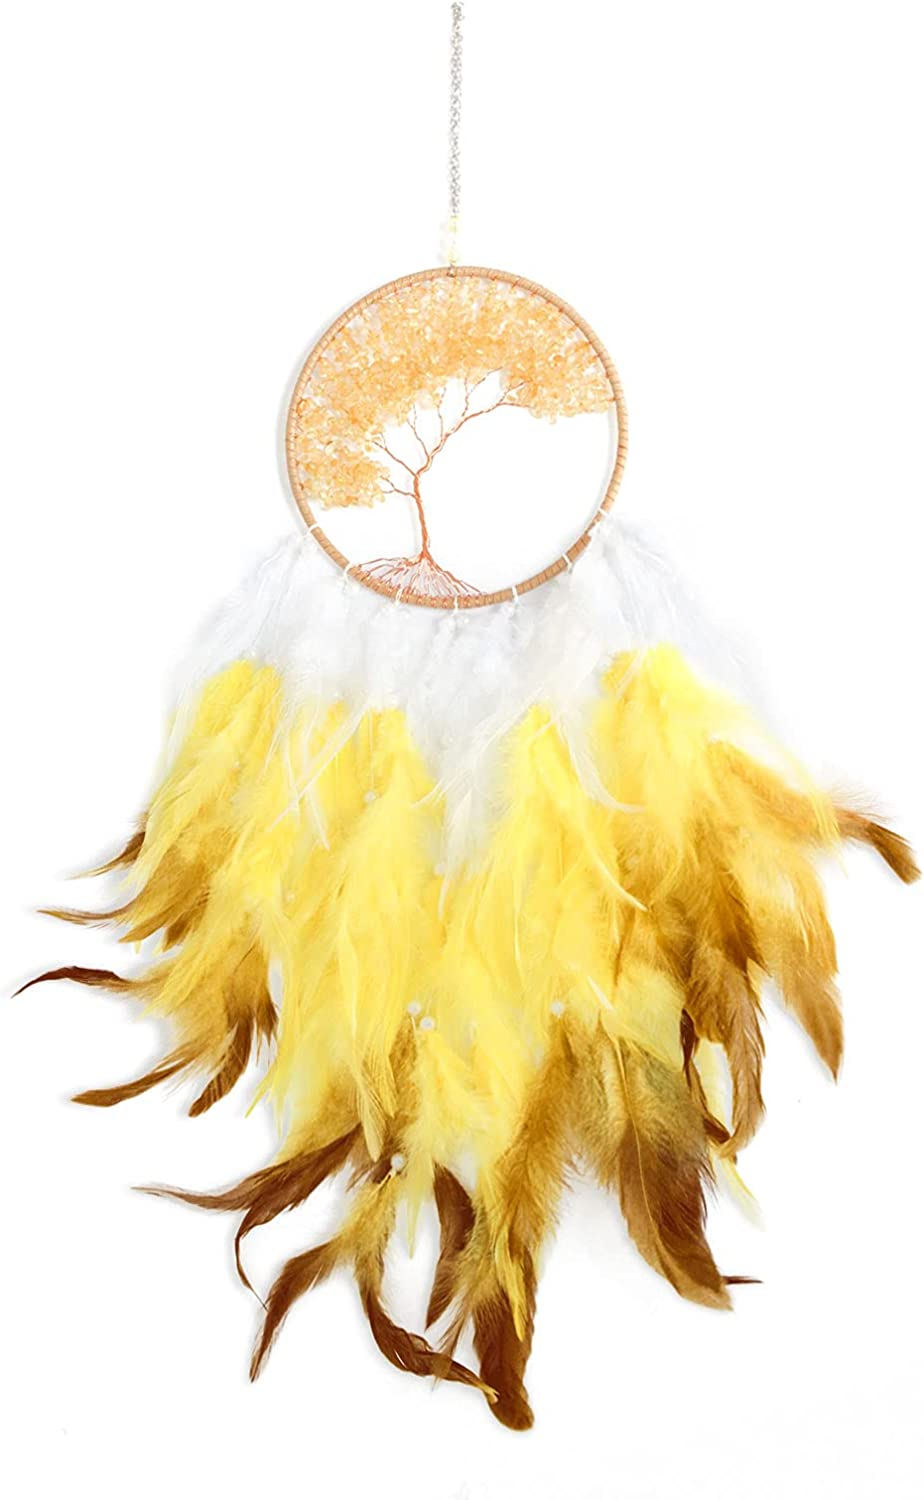 Pretty Jolly Fairy Gold Tree of Life Dream Catcher Wall Decor with Healing Crystal Stone Handmade Feather Dream Catchers Decoration Wall Hanging Ornaments for Bedroom Wedding Party Home Decor-25.6